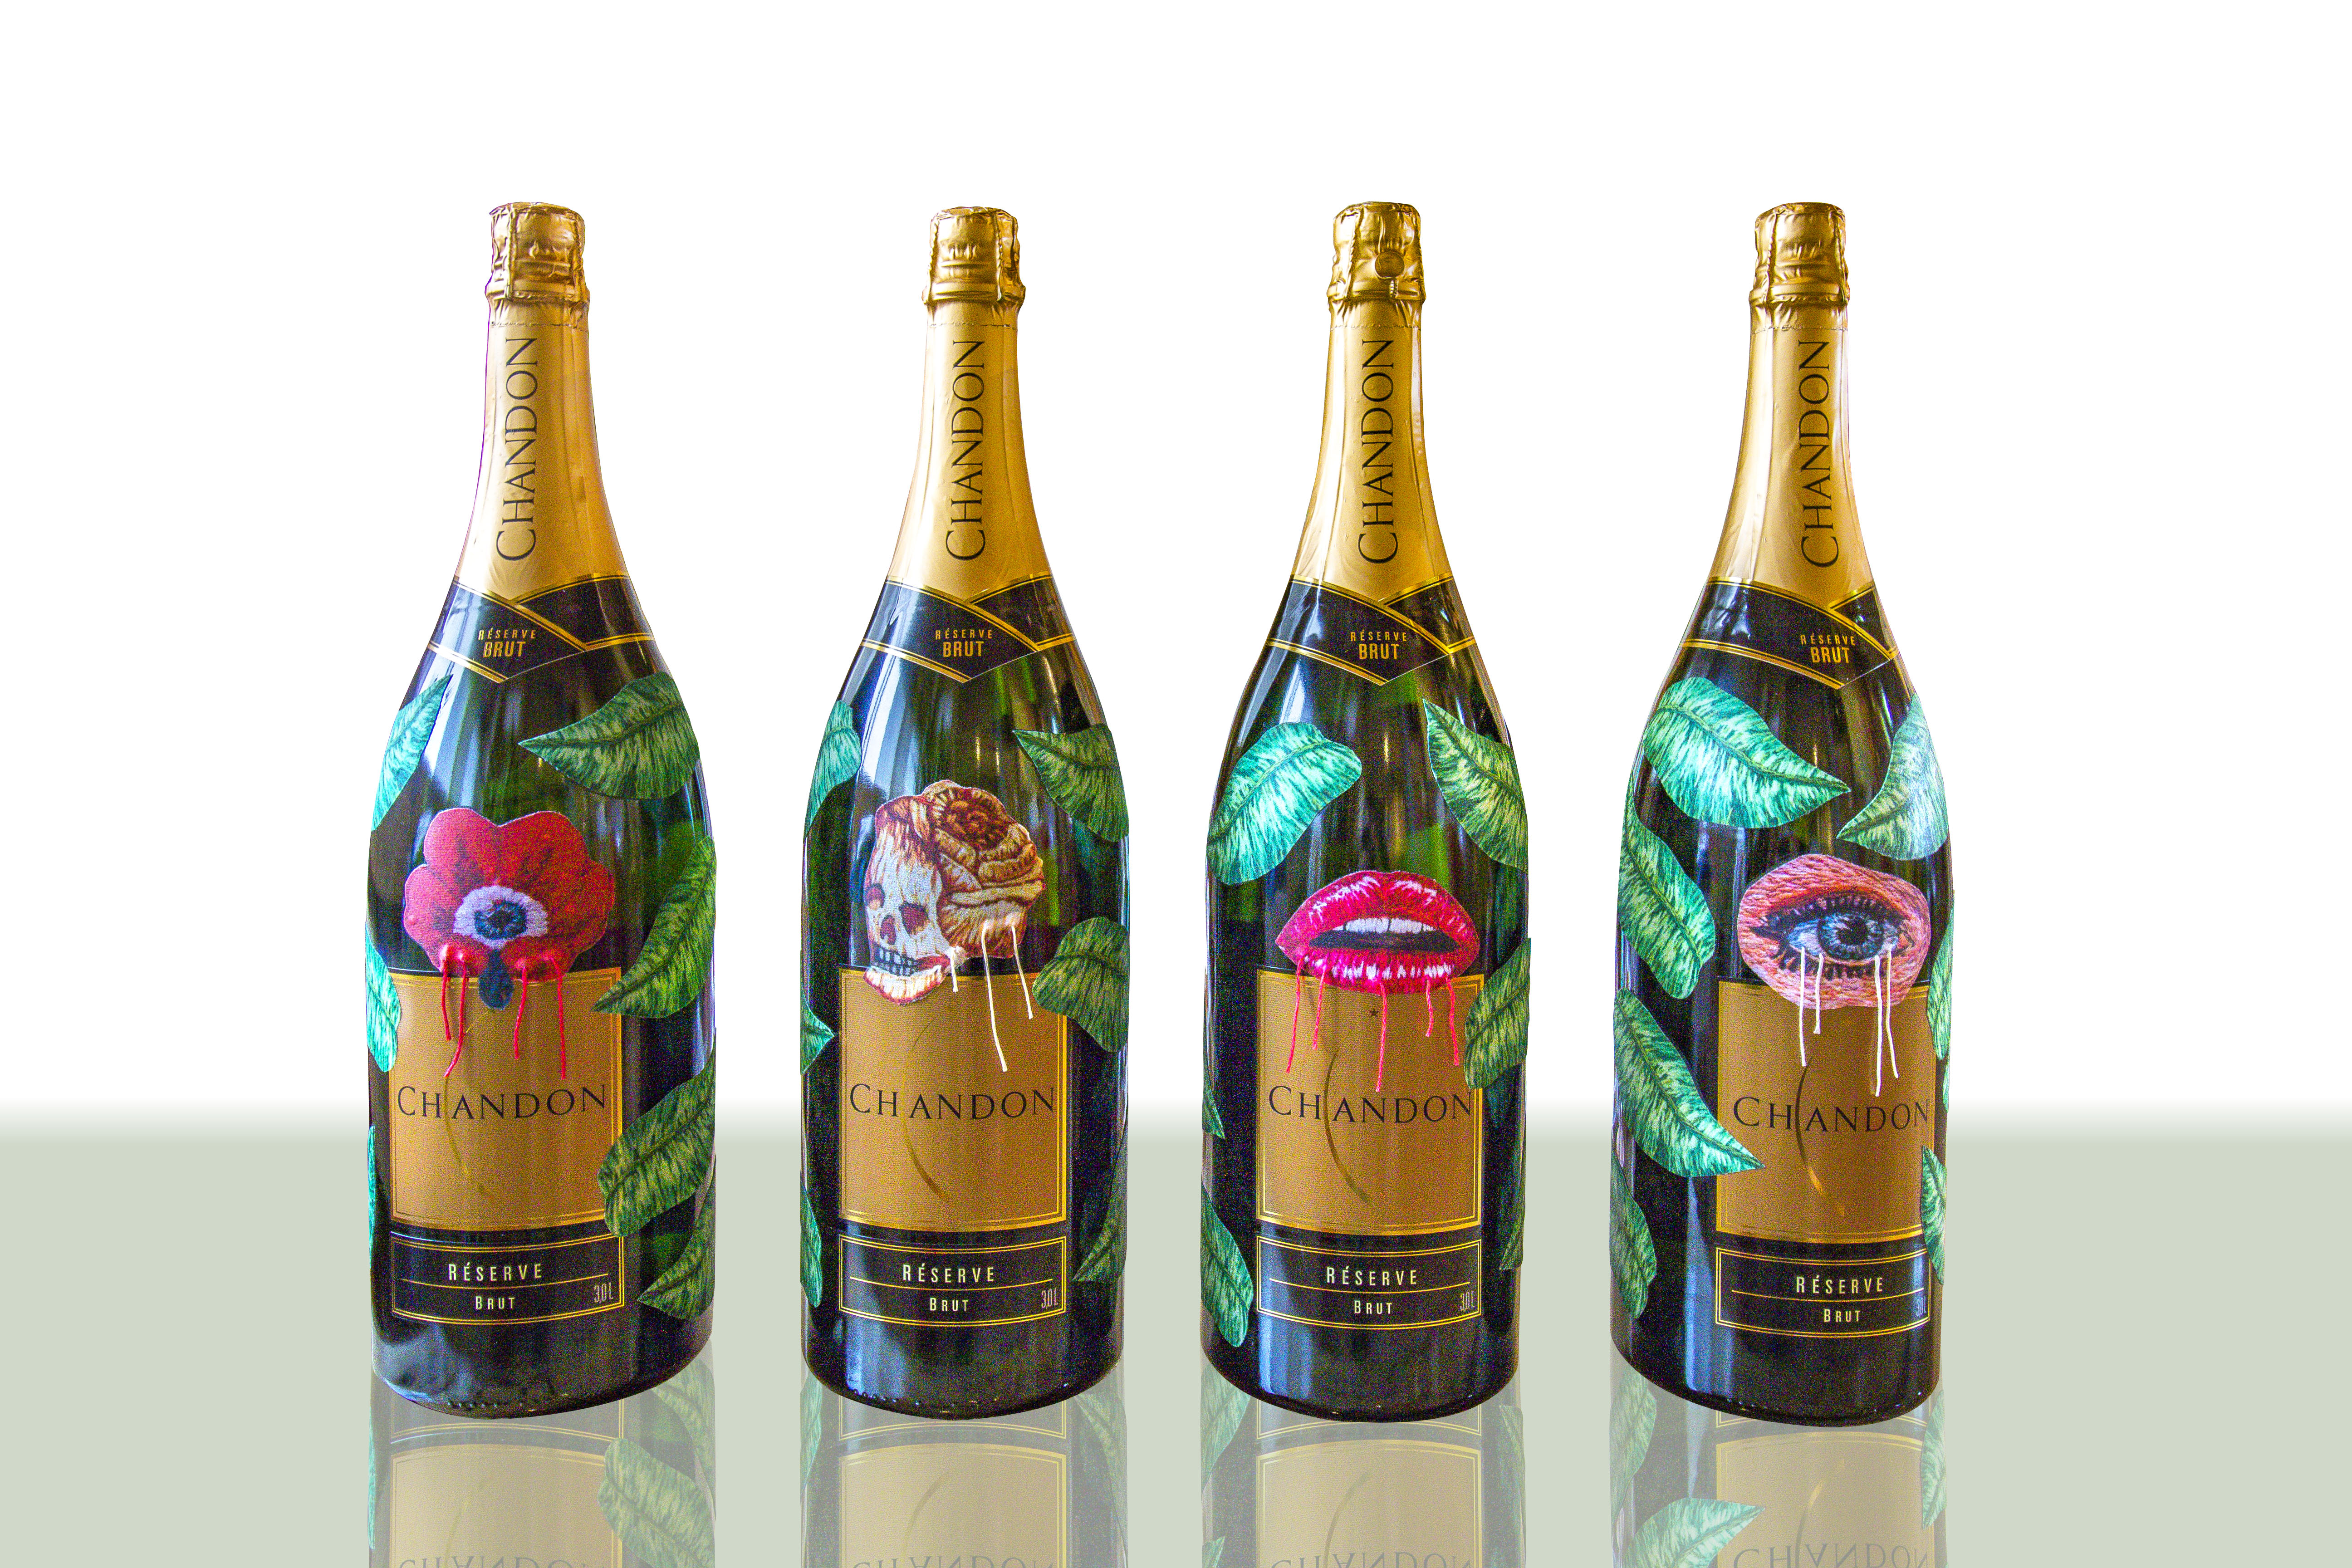 Chandon bottles